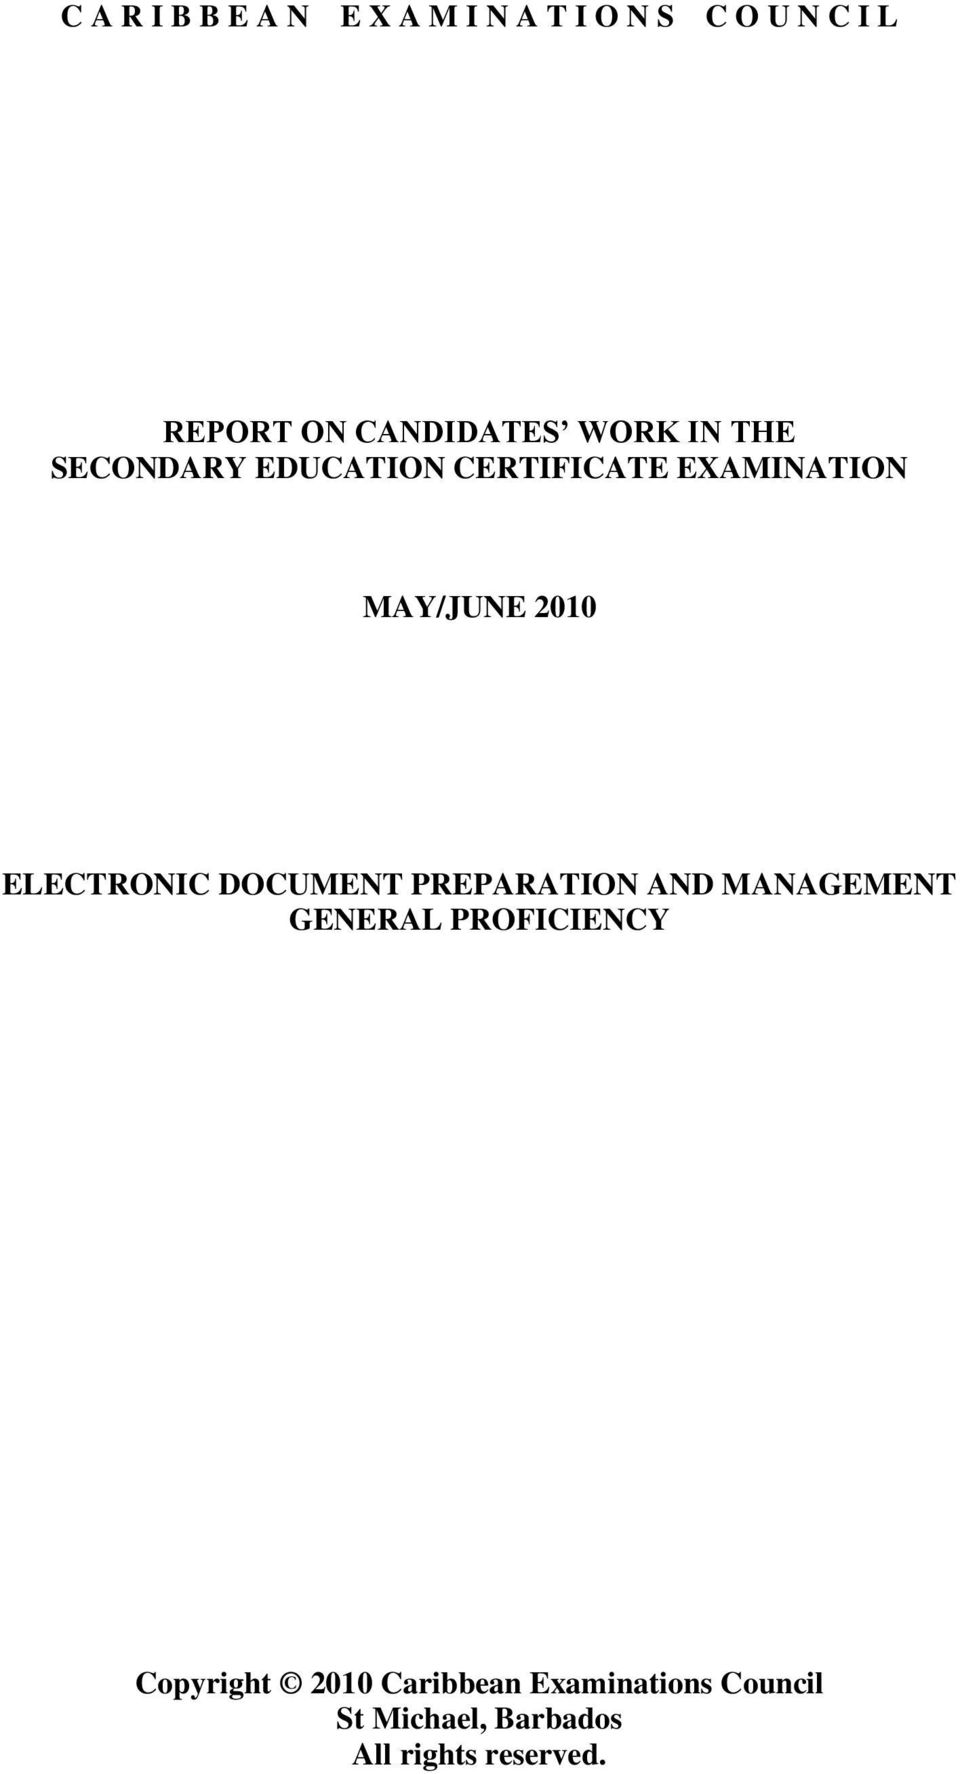 2010 ELECTRONIC DOCUMENT PREPARATION AND MANAGEMENT GENERAL PROFICIENCY